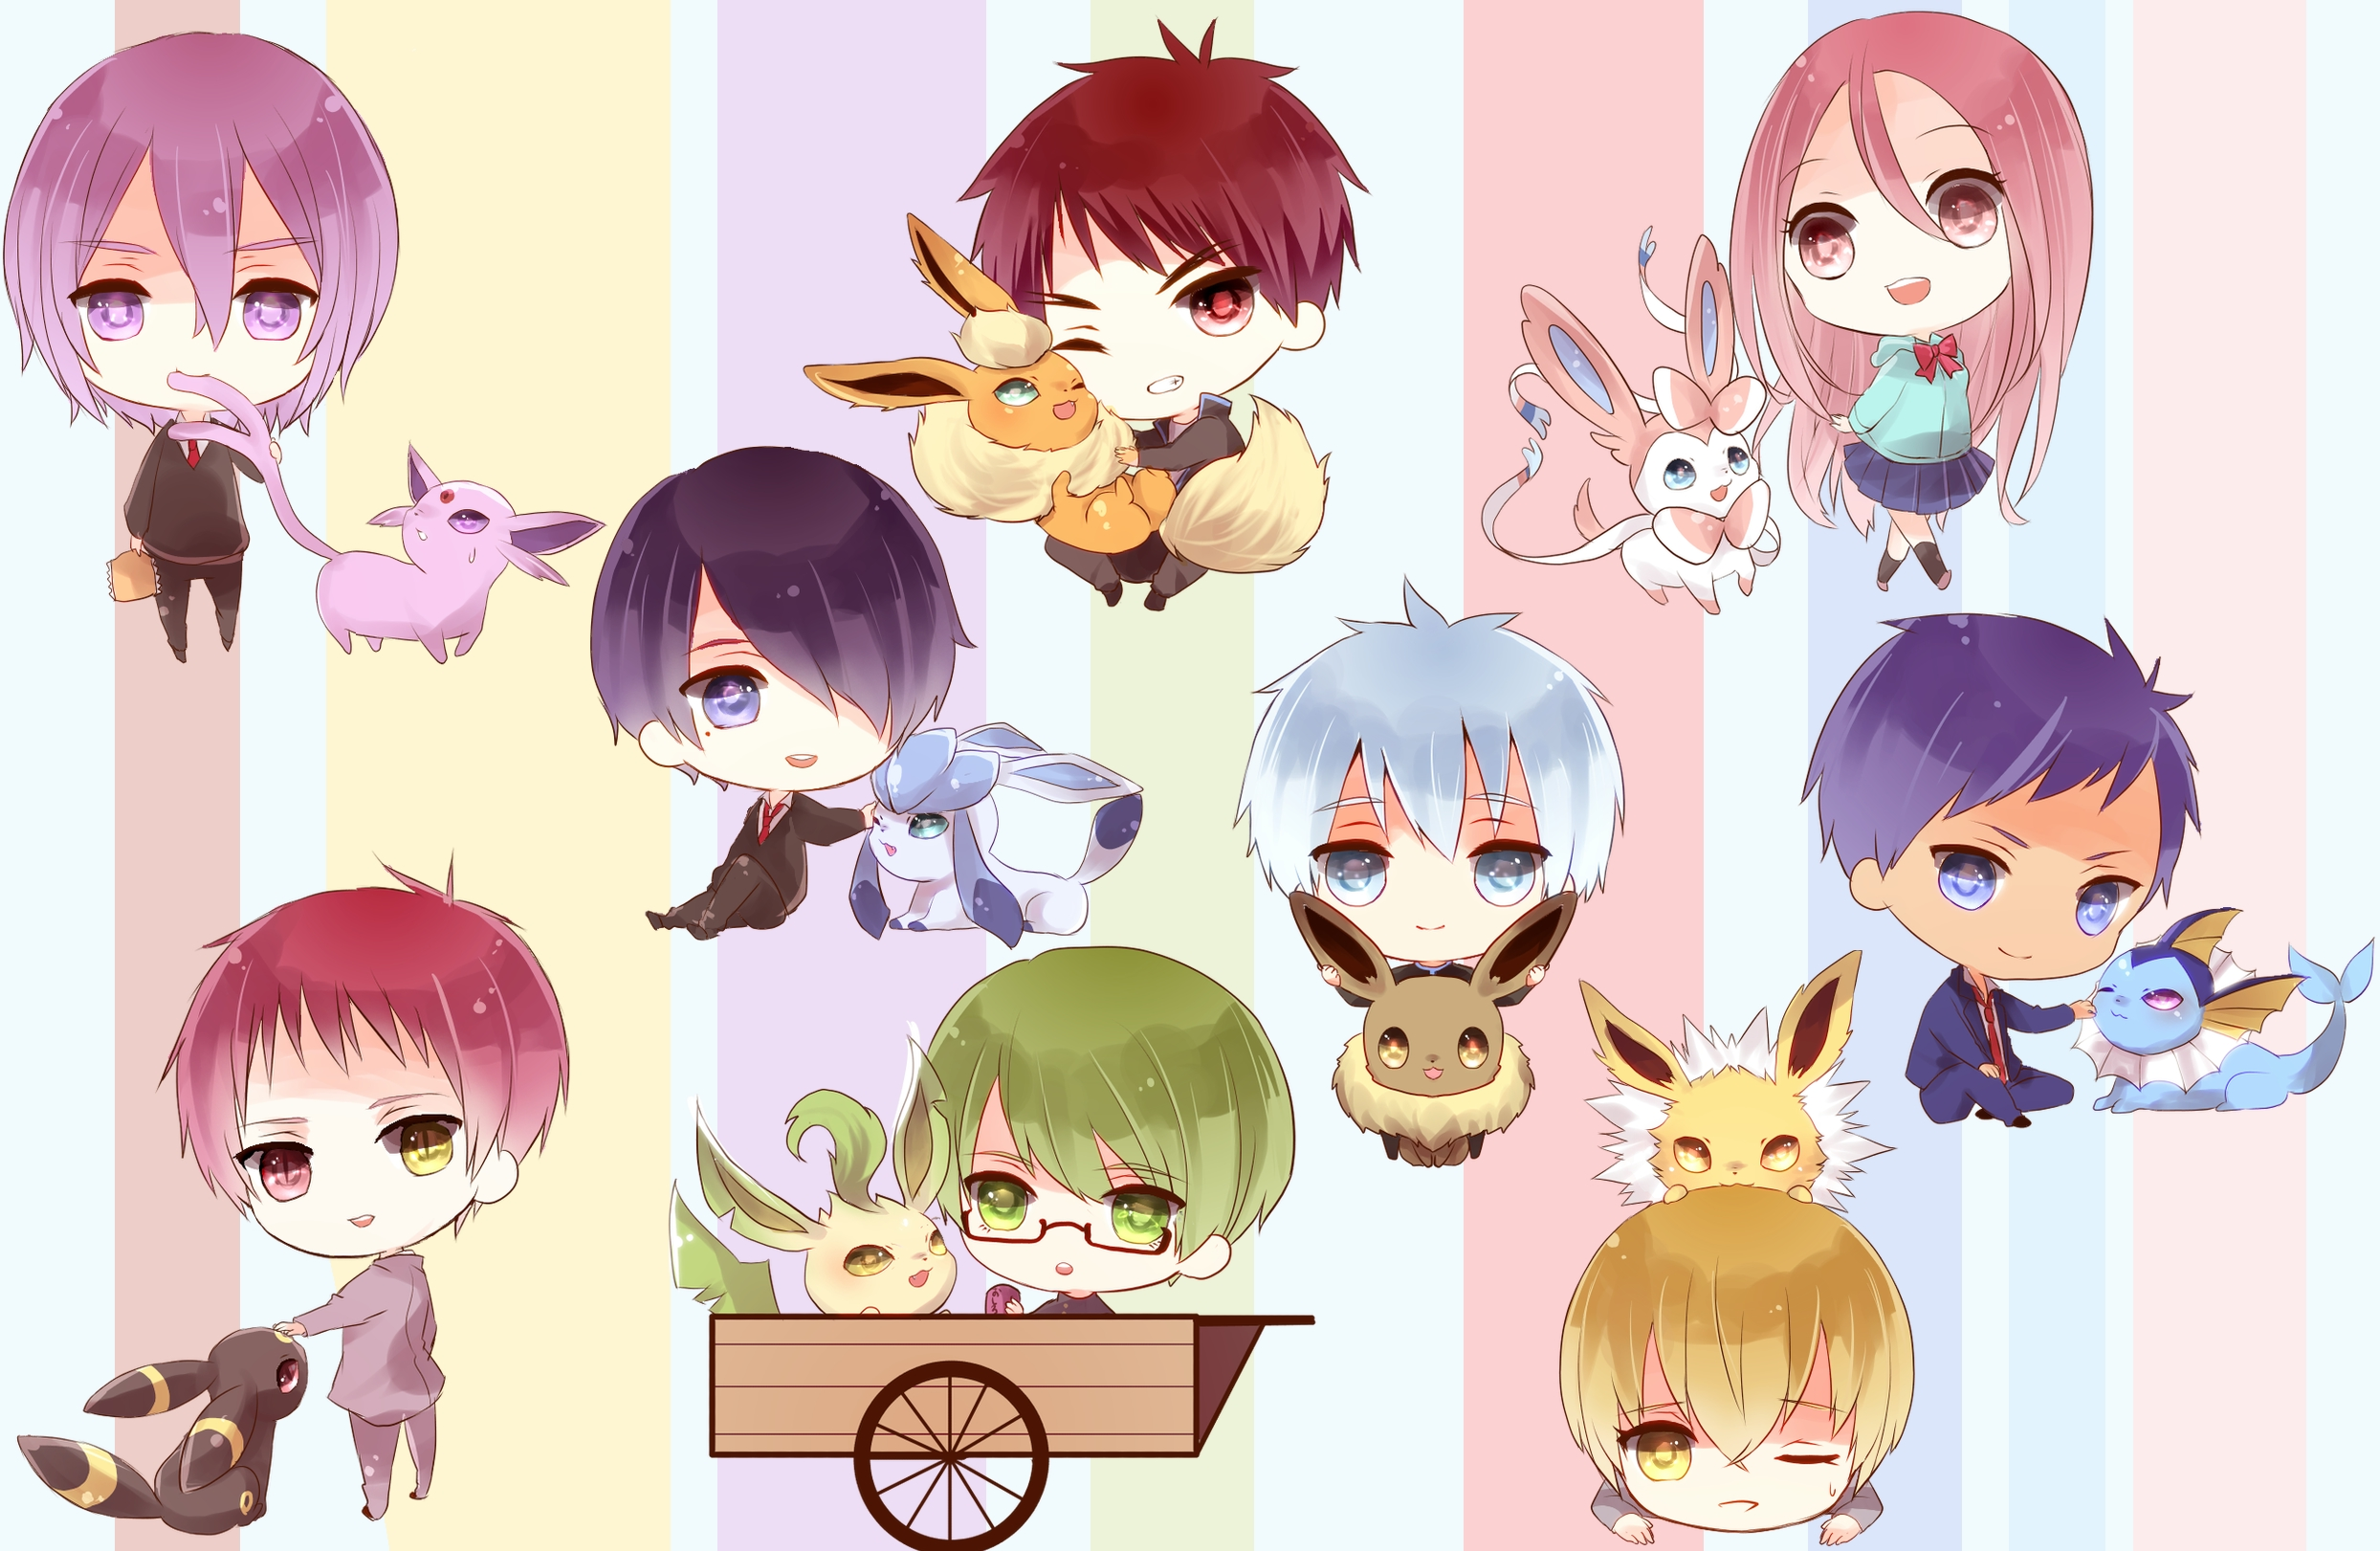 Kuroko no Basket pokemon wallpaper | 2488x1621 | 142836 | WallpaperUP